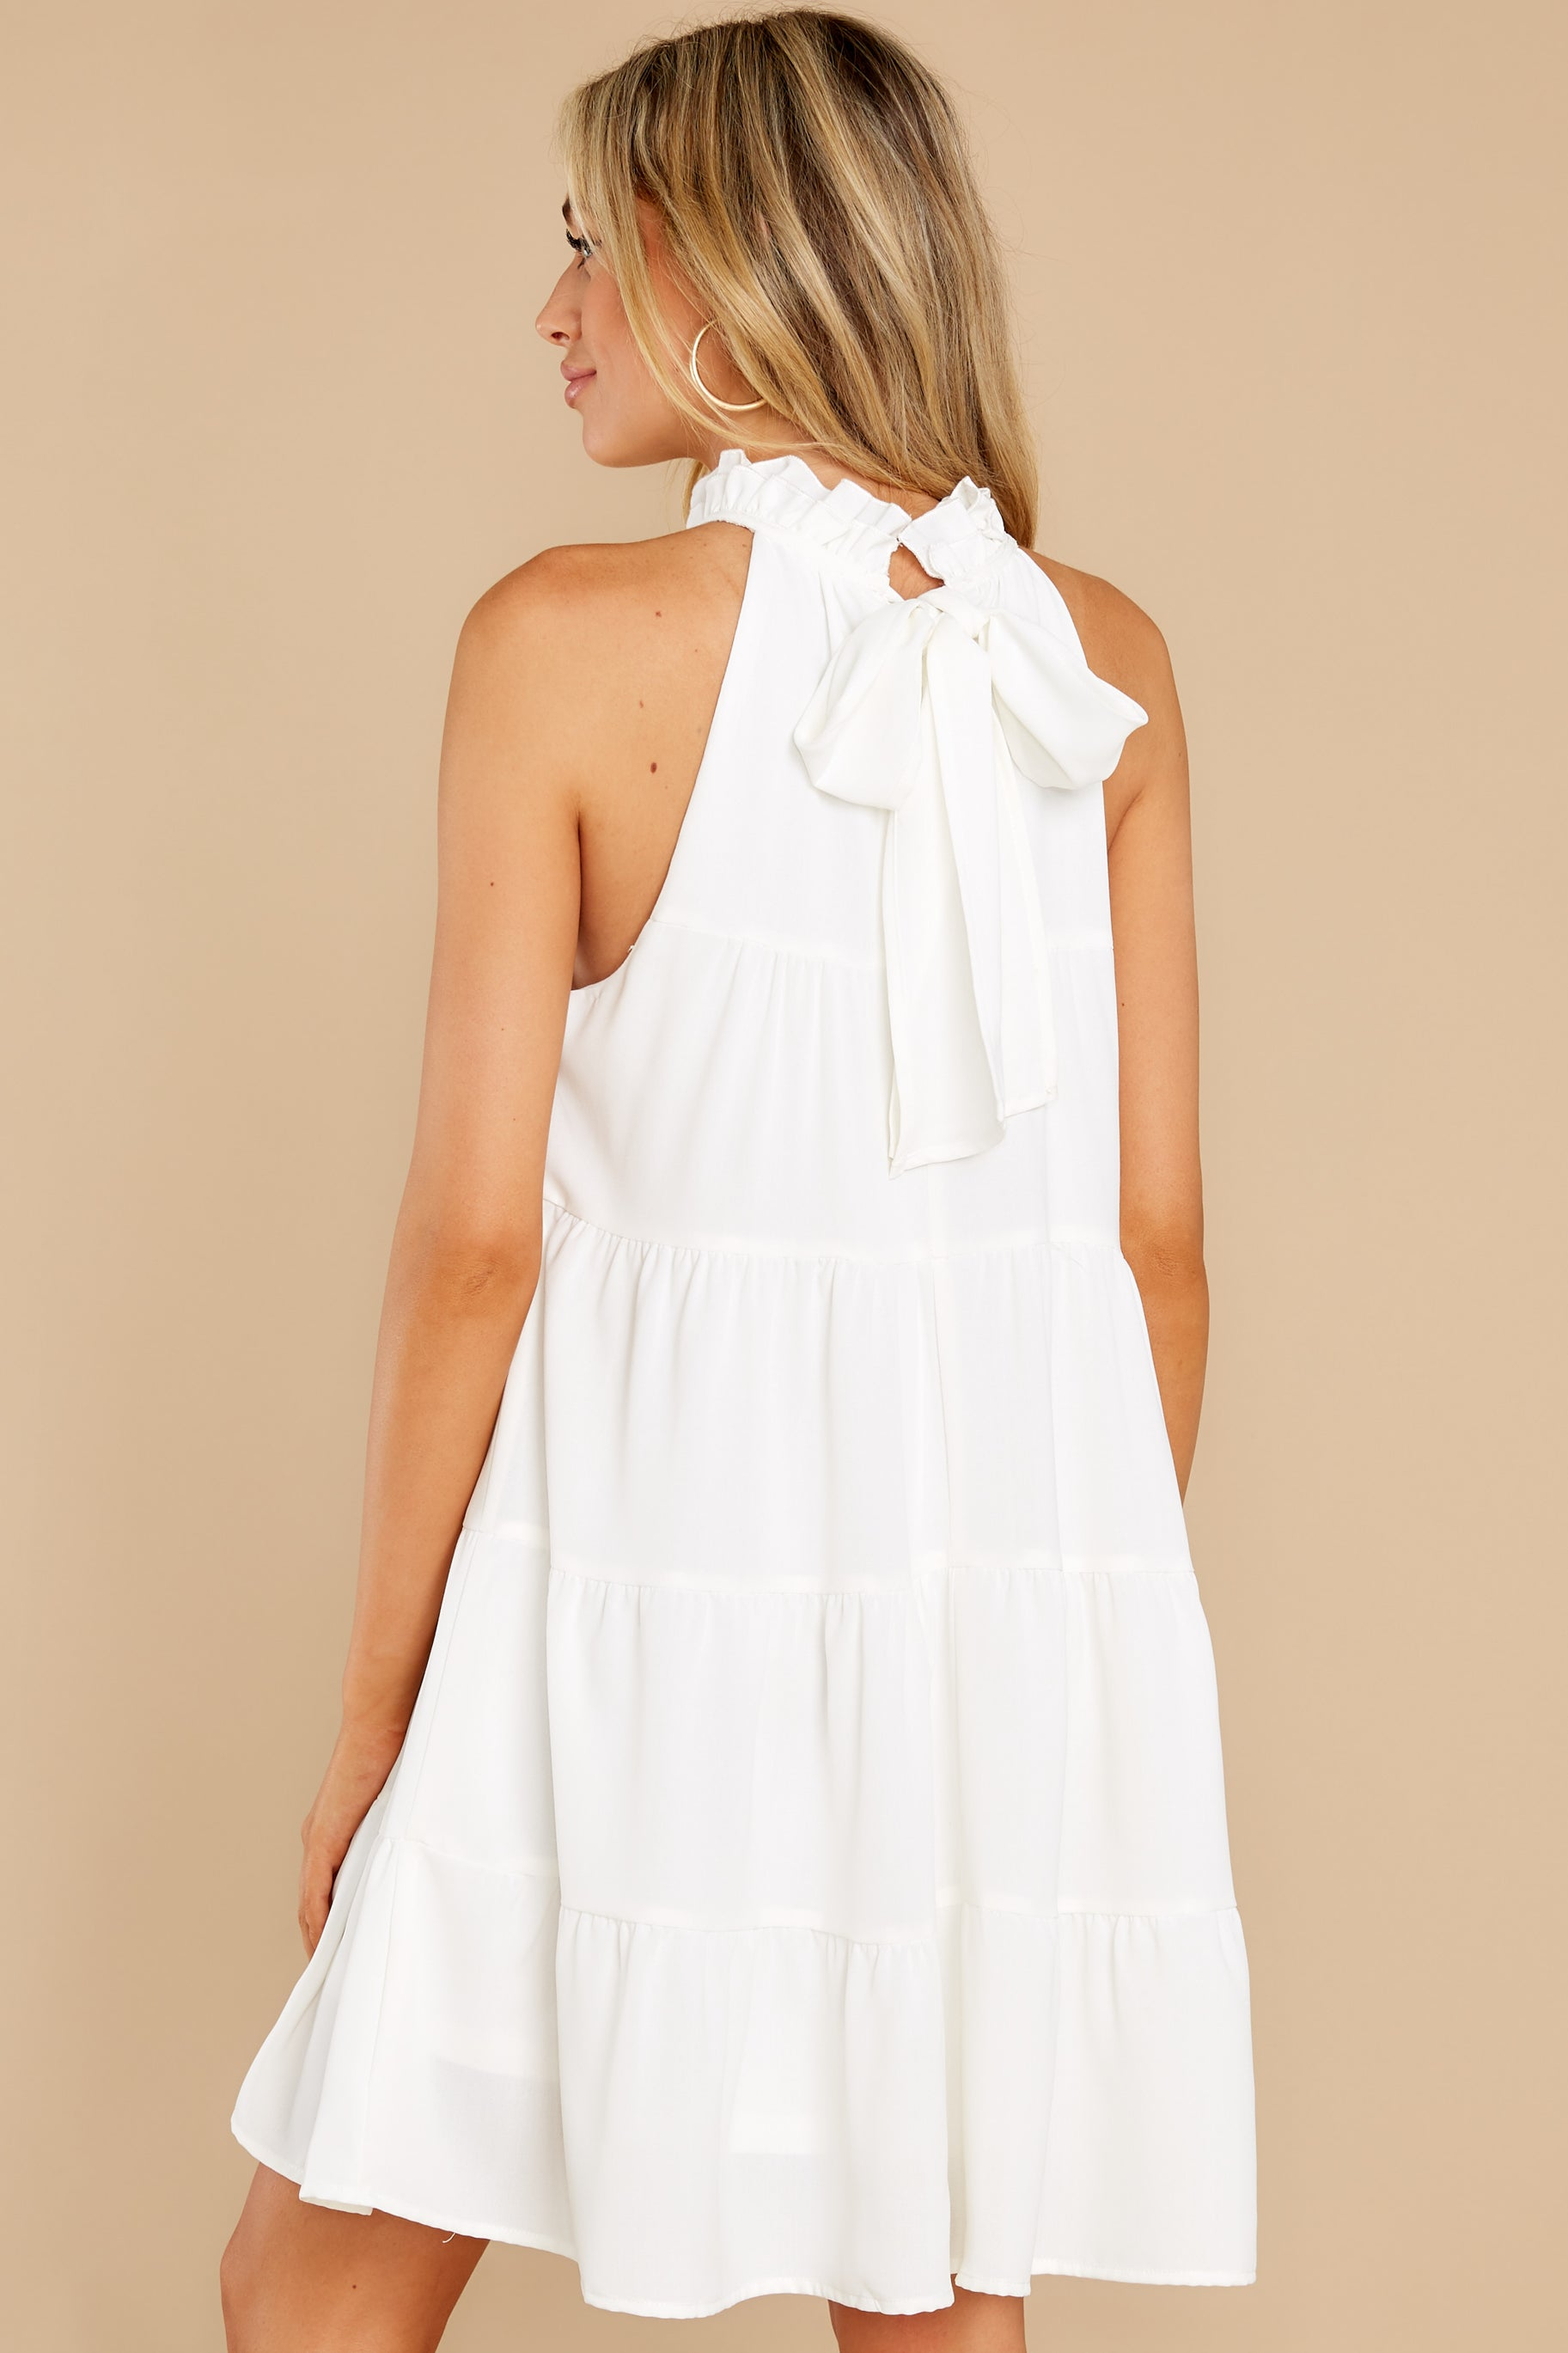 7 Cut To The Chase Off White Dress at reddress.com